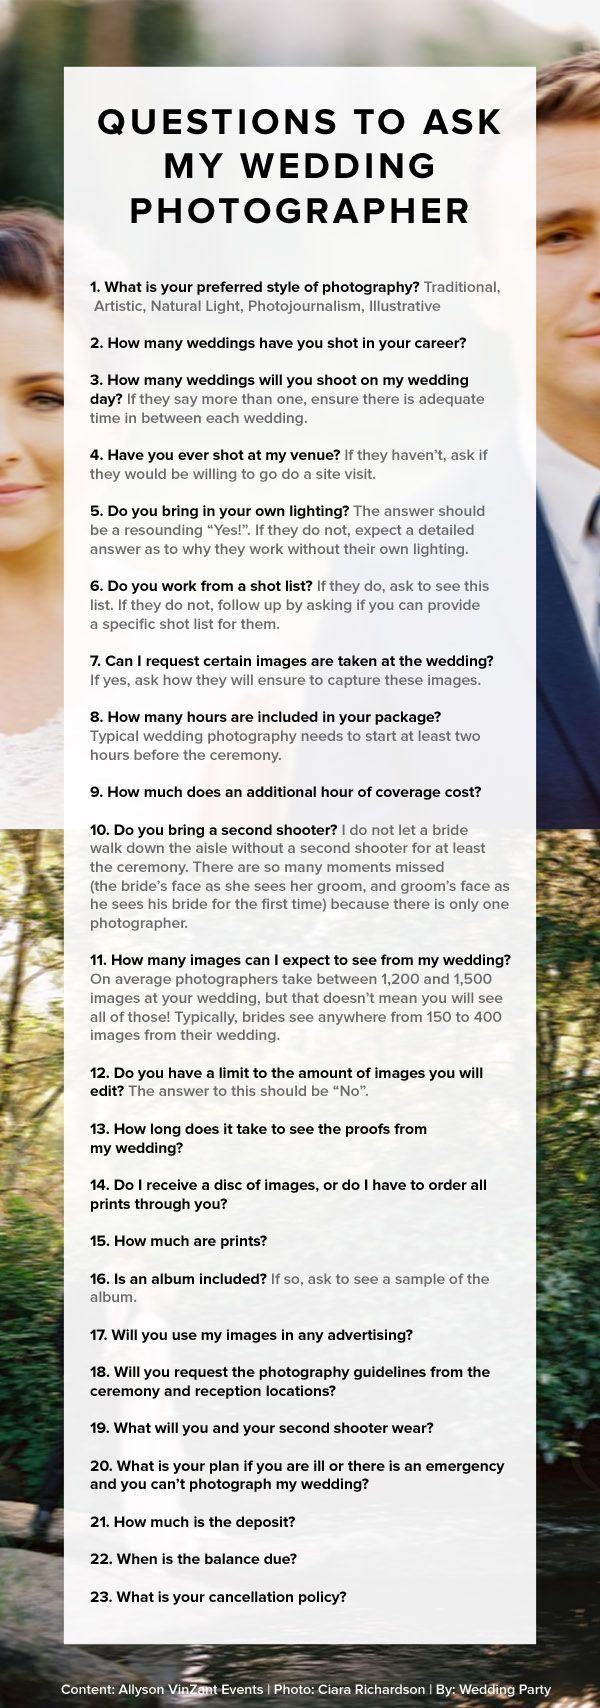 Questions to ask my wedding photographer by allyson for Questions for wedding photographer